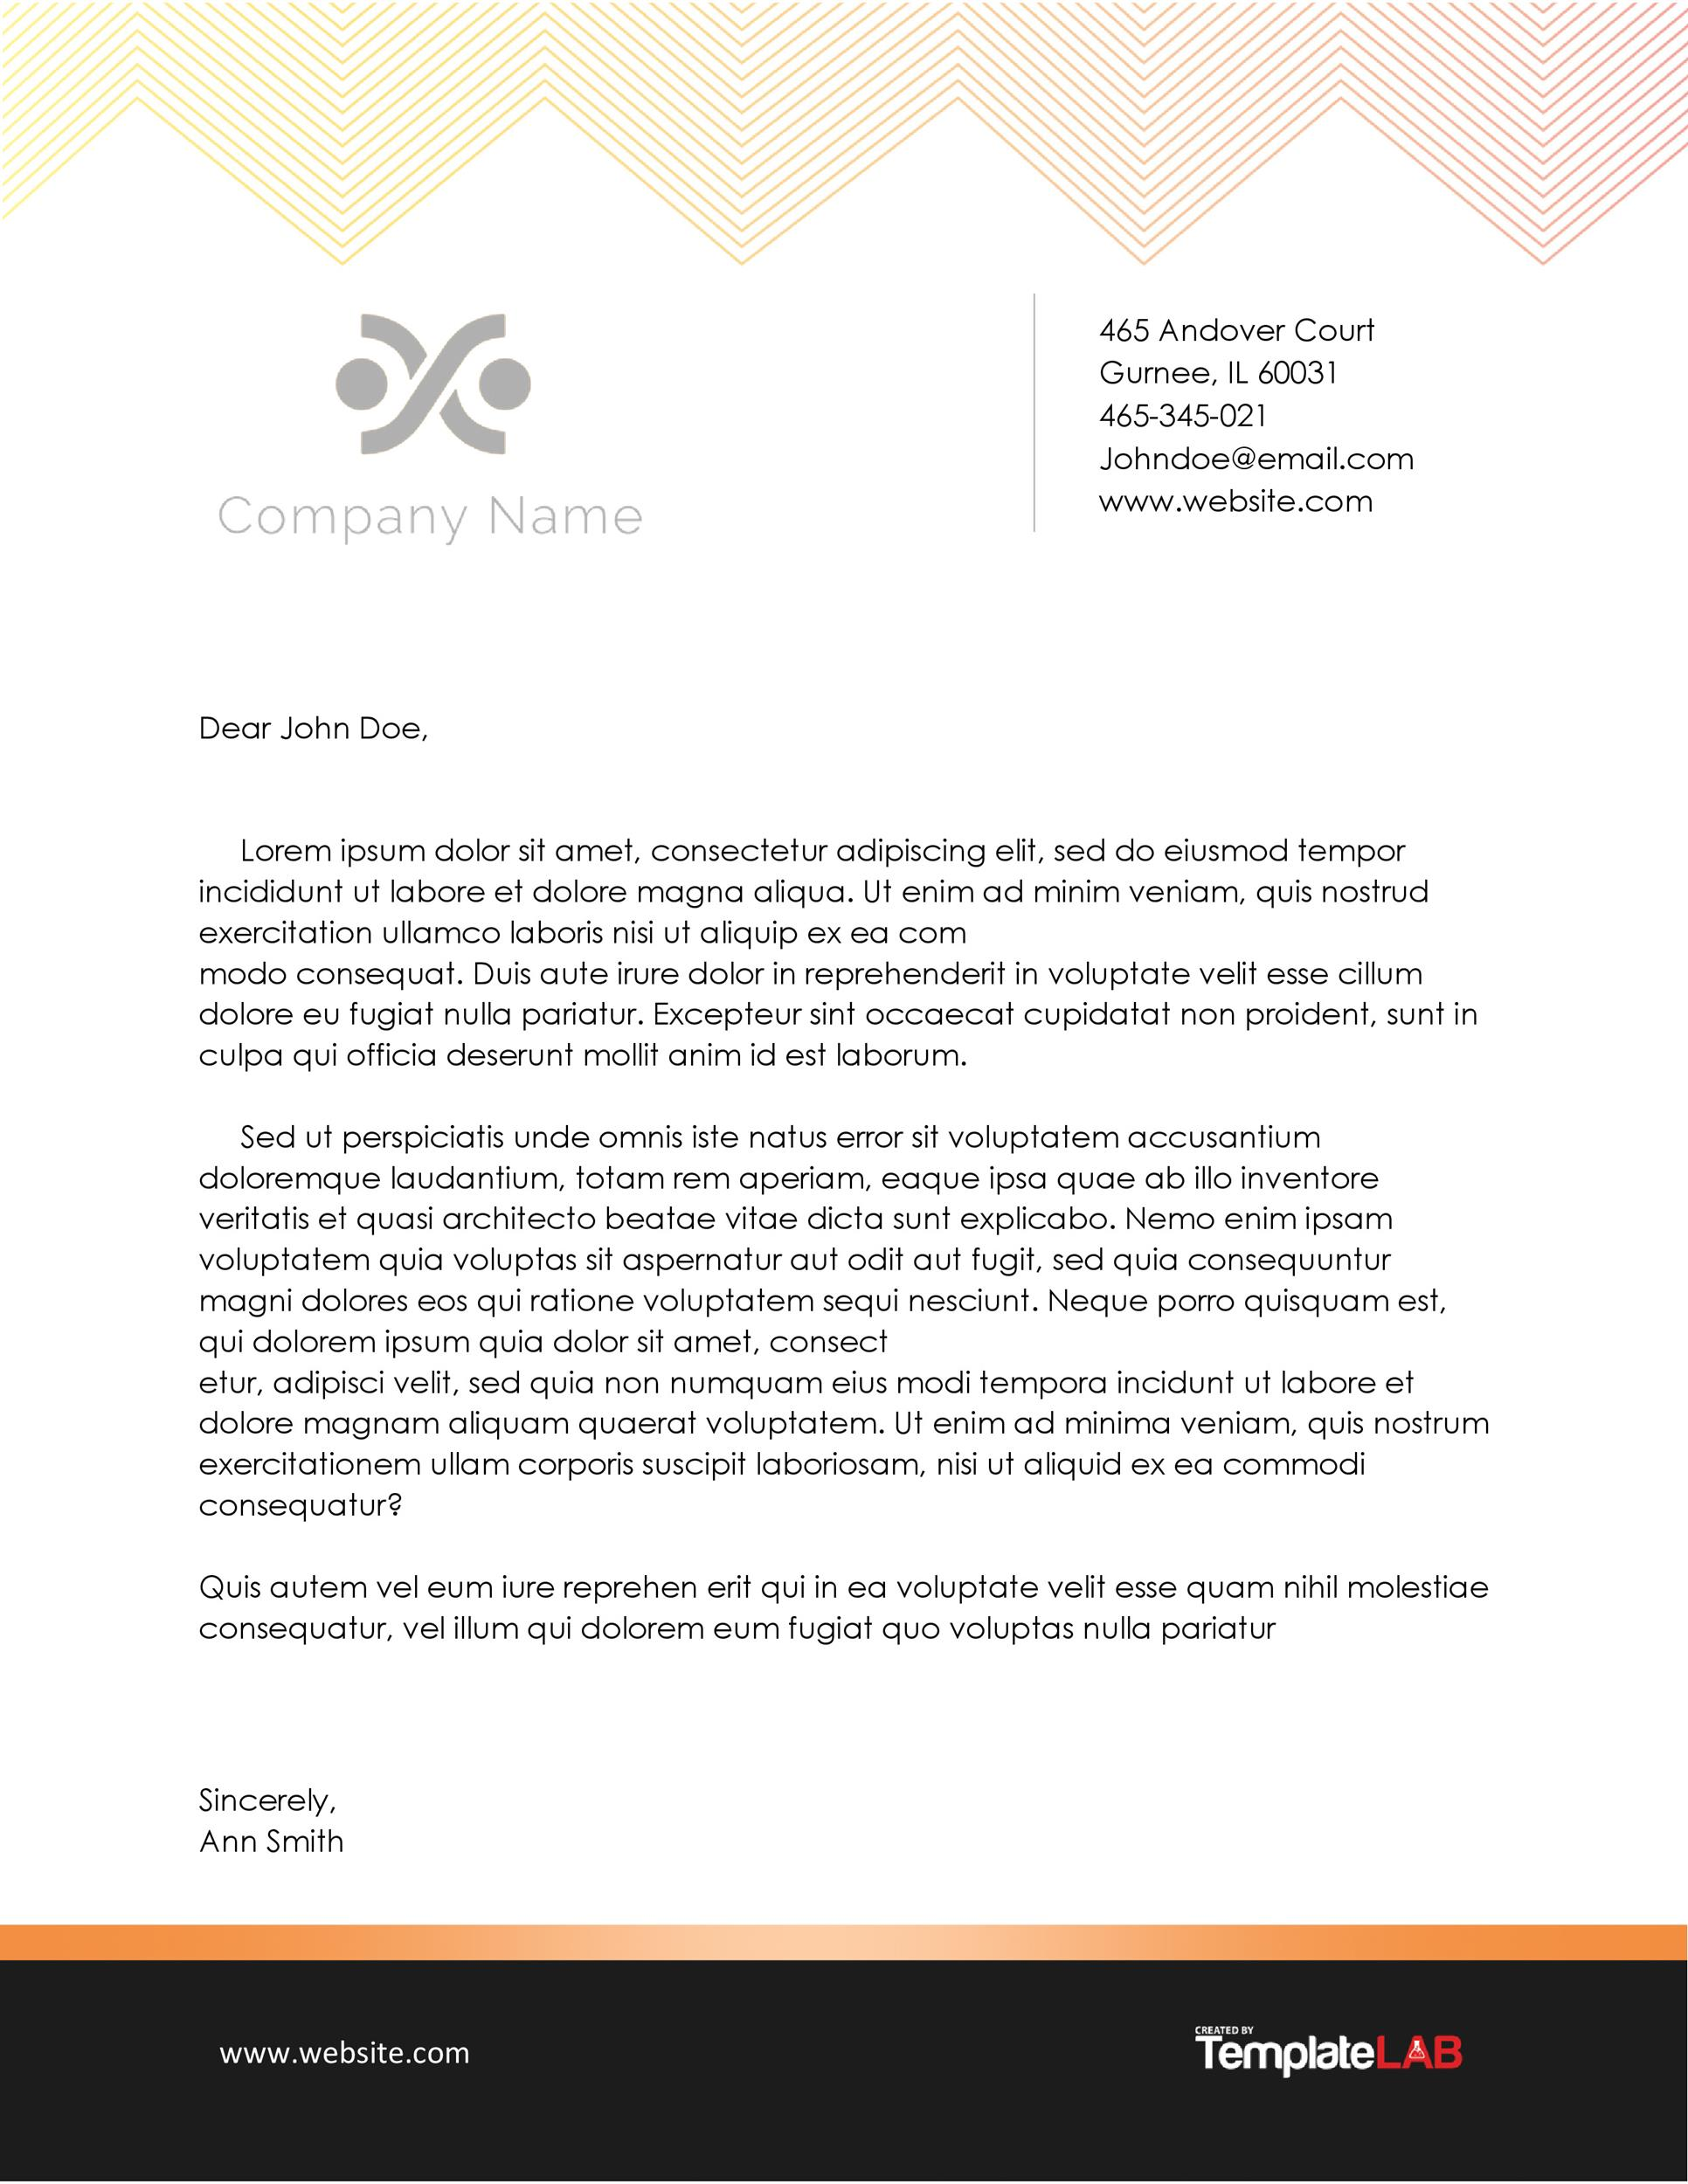 Free Business Letterhead Template 2 (Word) - TemplateLab Exclusive